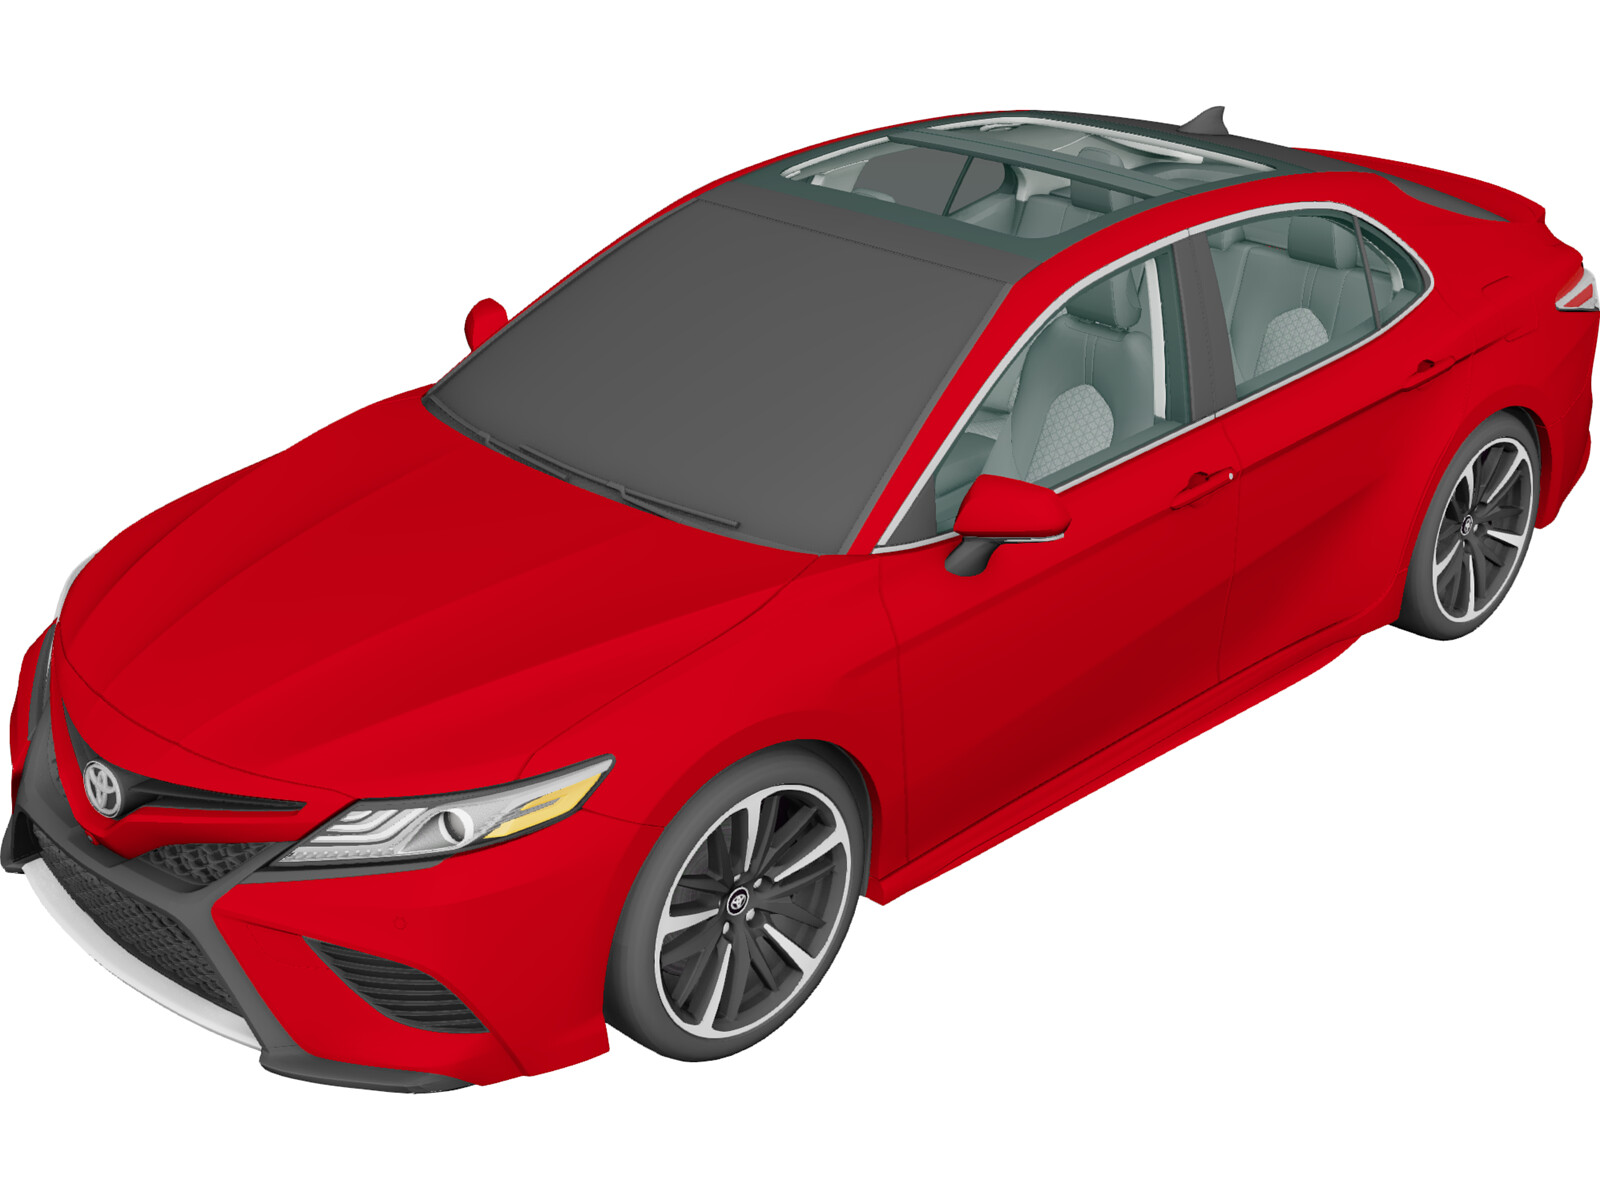 Toyota Camry (2018) 3D Model